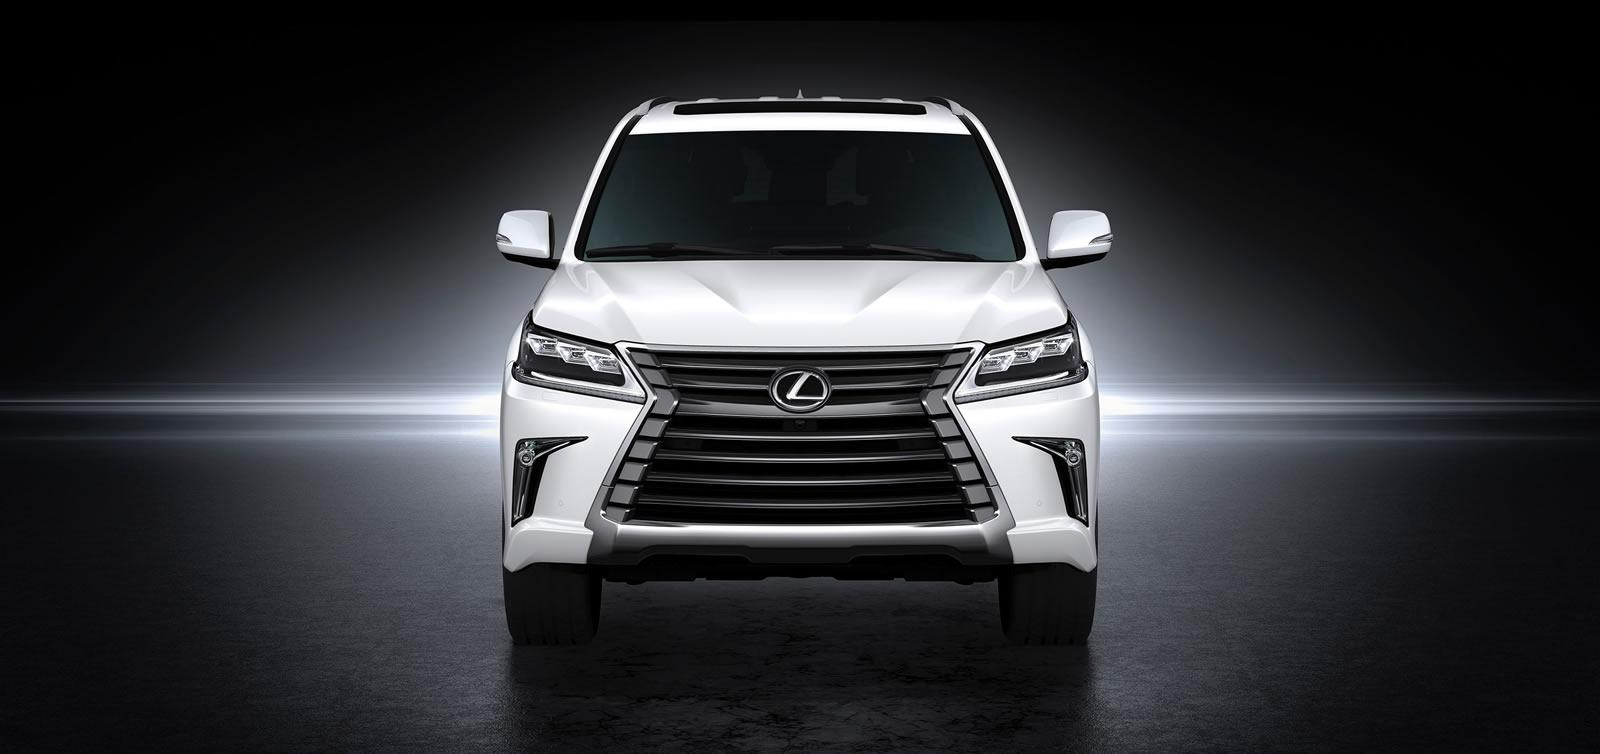 2019 Lexus Lx 570 Redesign Horse Rumors Future Concept The Brand New Comes With Familiar Value Performance And Comfort